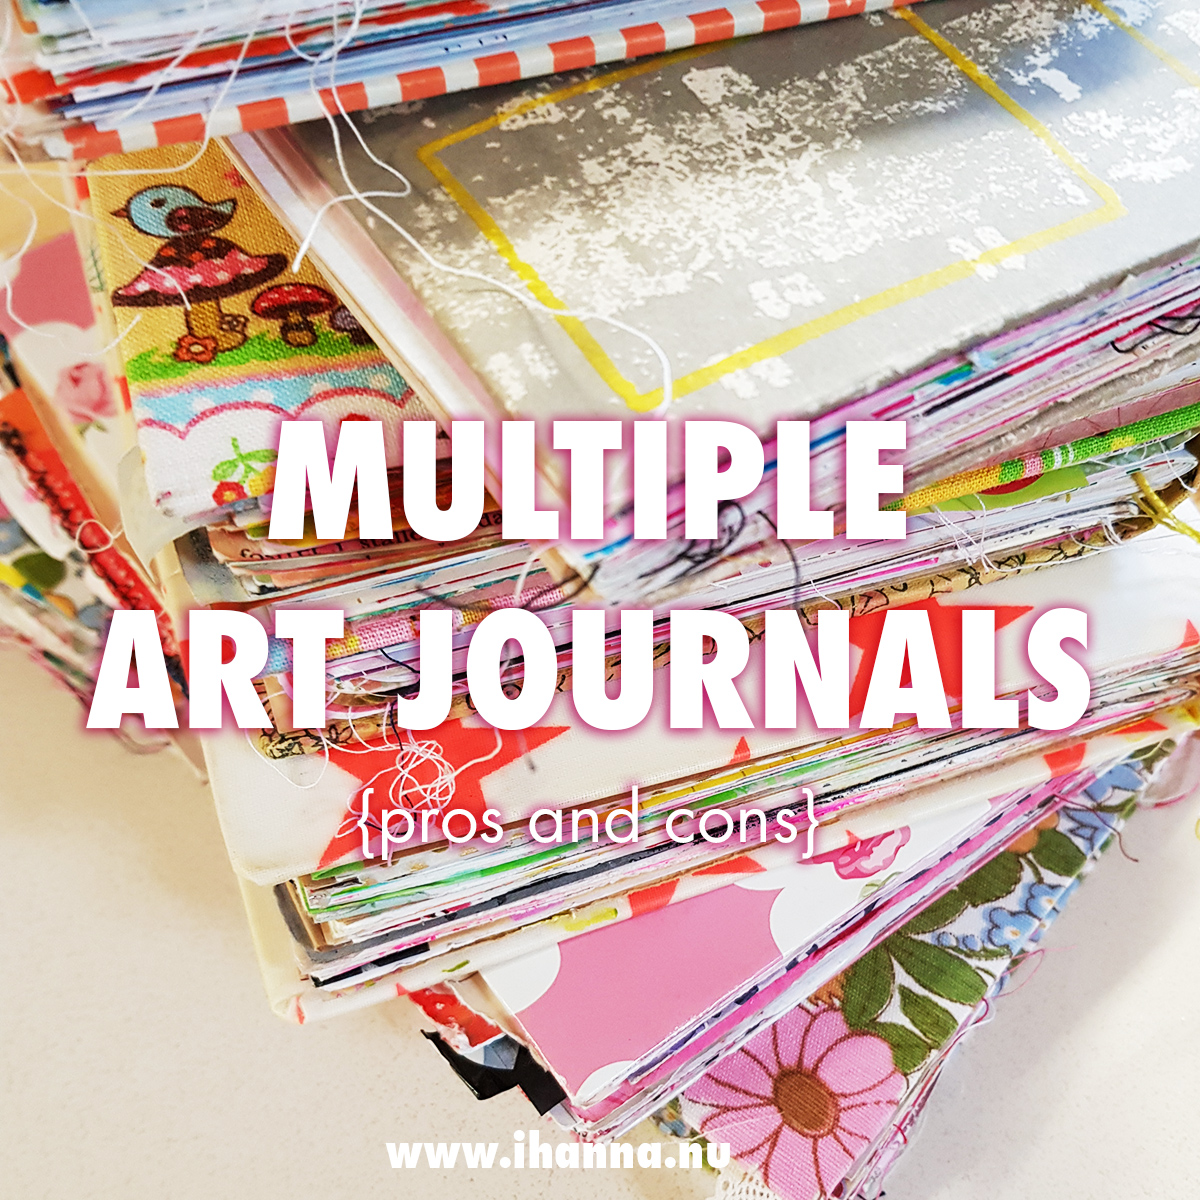 Working in multiple Art Journal volumes